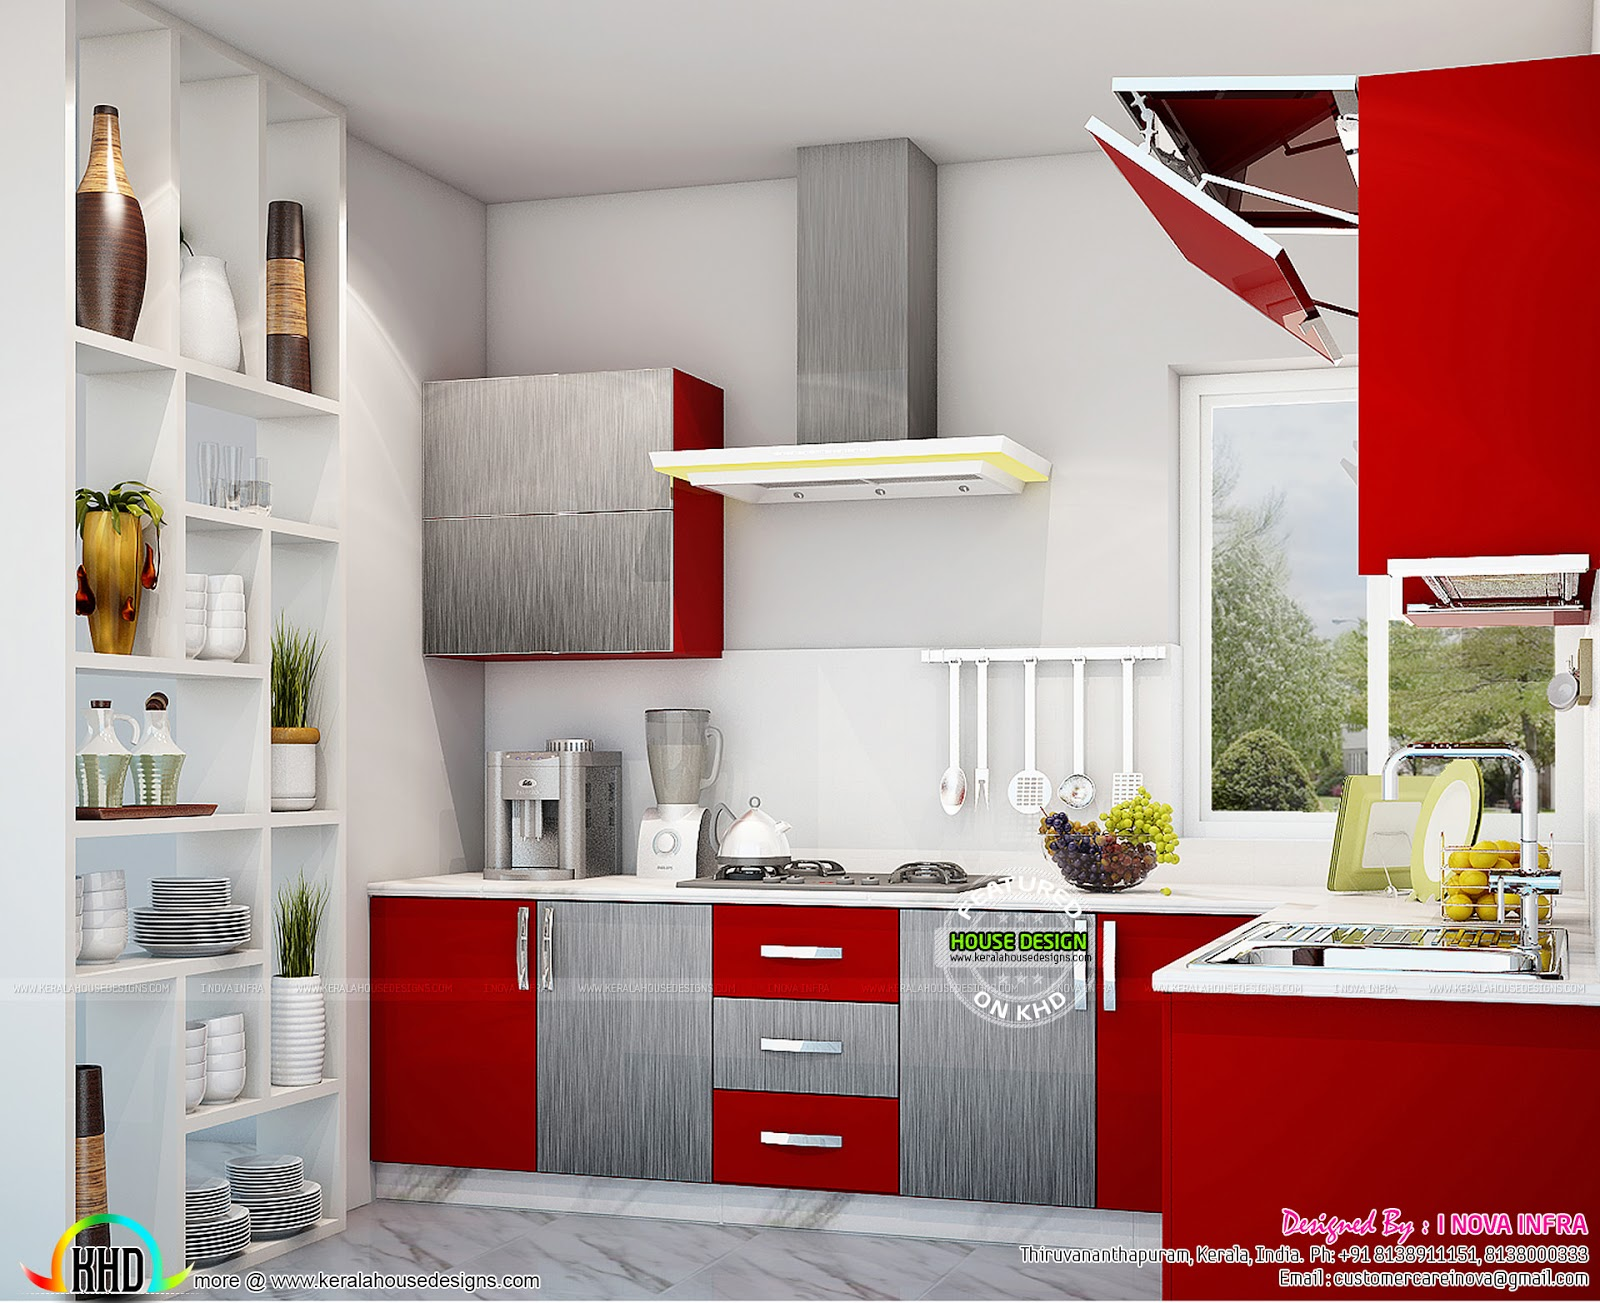 Kitchen interior works at trivandrum kerala home design for Modern kitchen designs in kerala